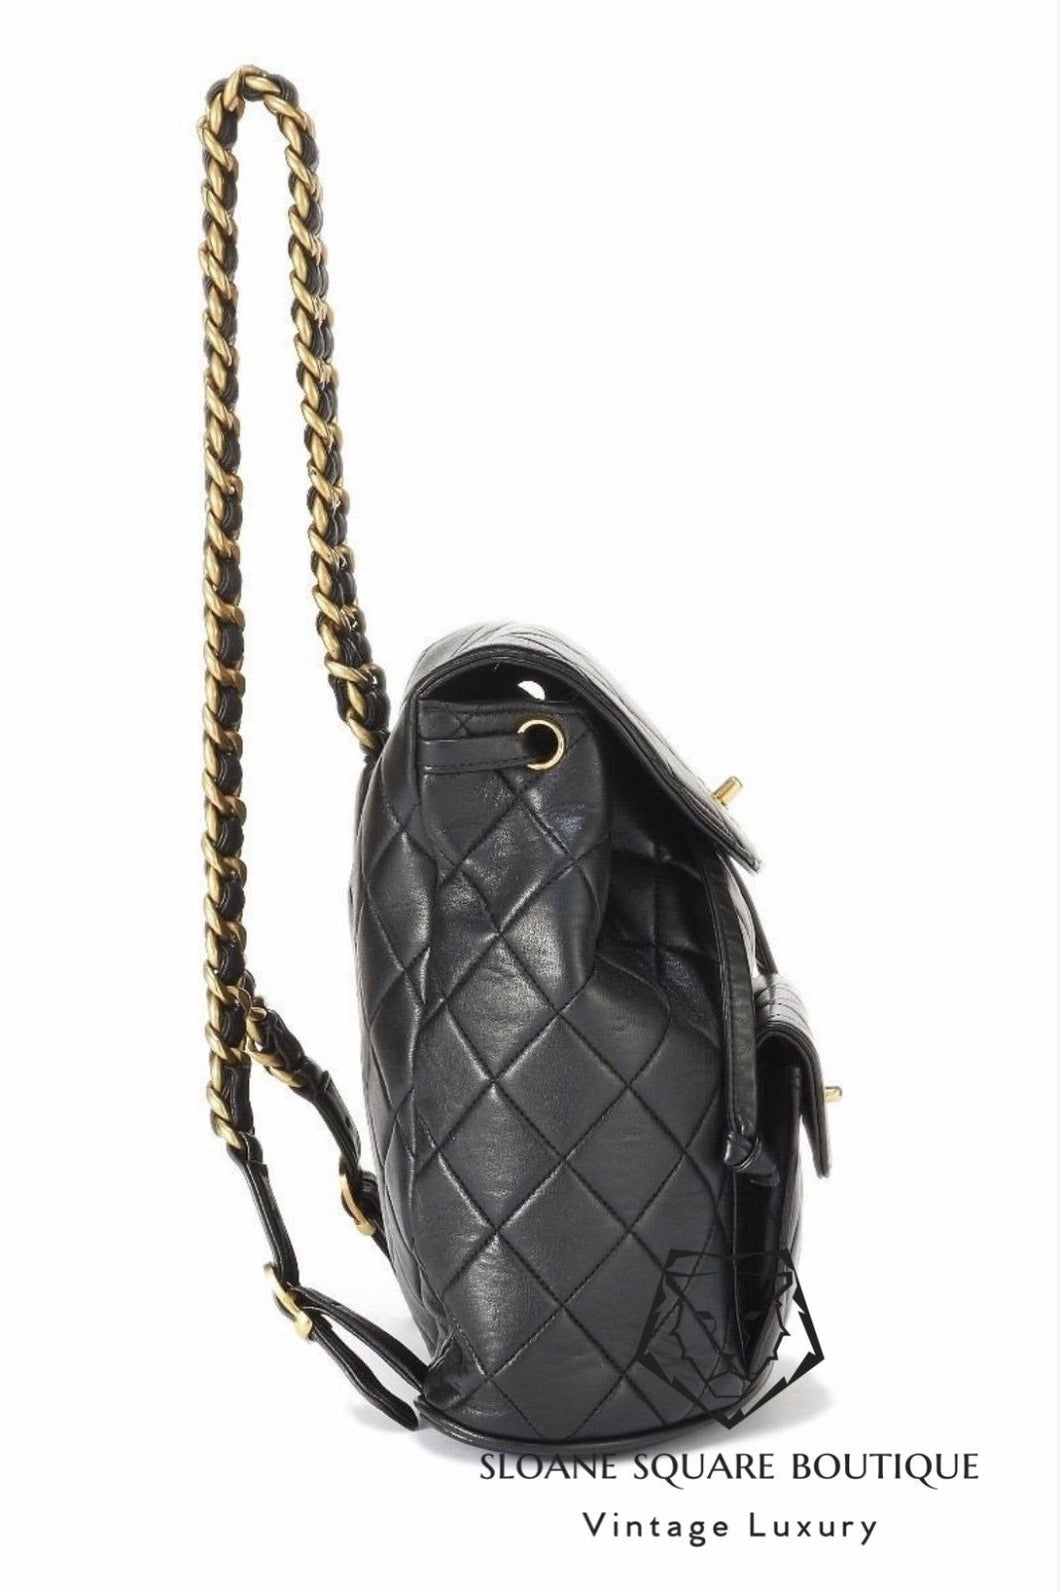 3daf2321b0e6 ... CHANEL VINTAGE BLACK QUILTED CHAIN DRAWSTRING BACKPACK BAG ...